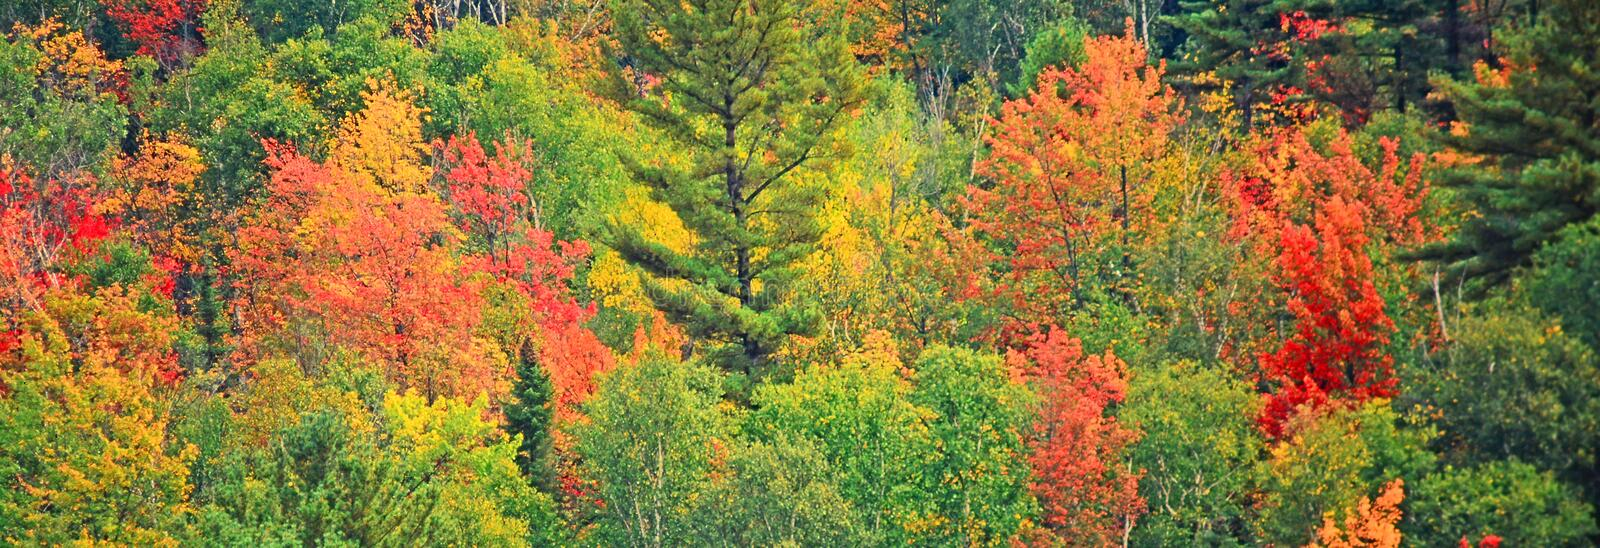 Trees in fall colors stock photo